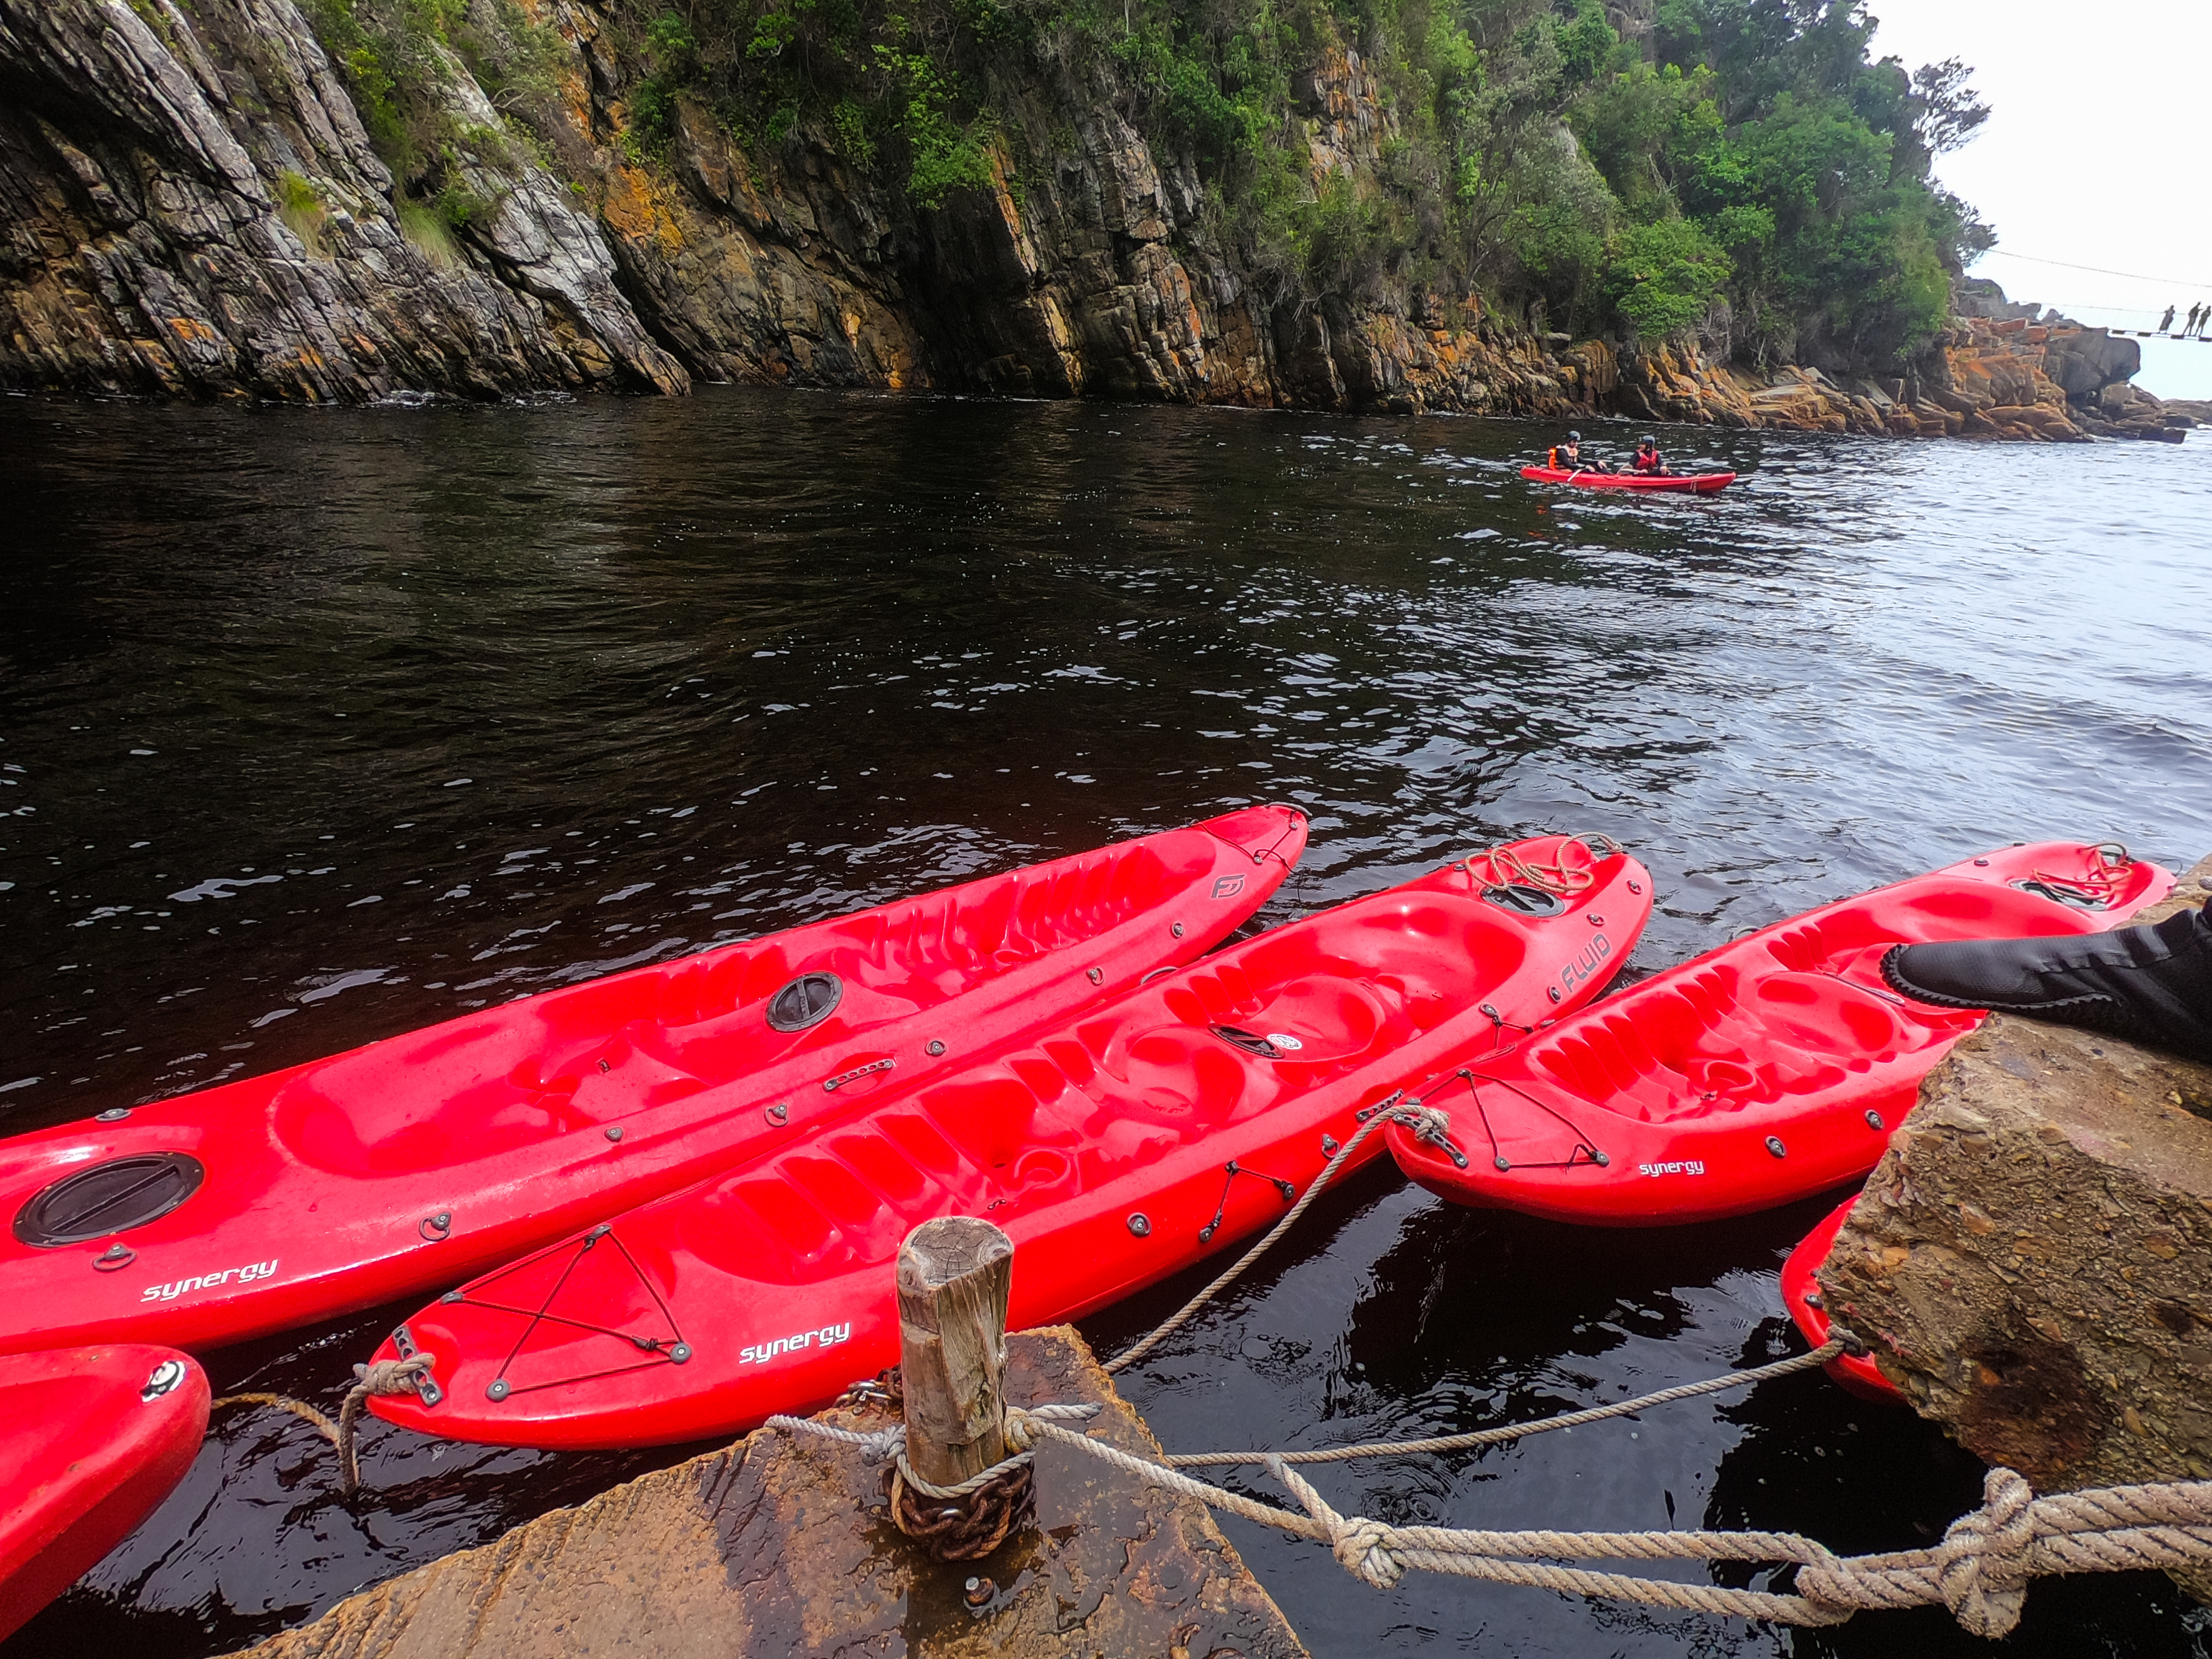 Kayak & Lilo with Untouched Adventures